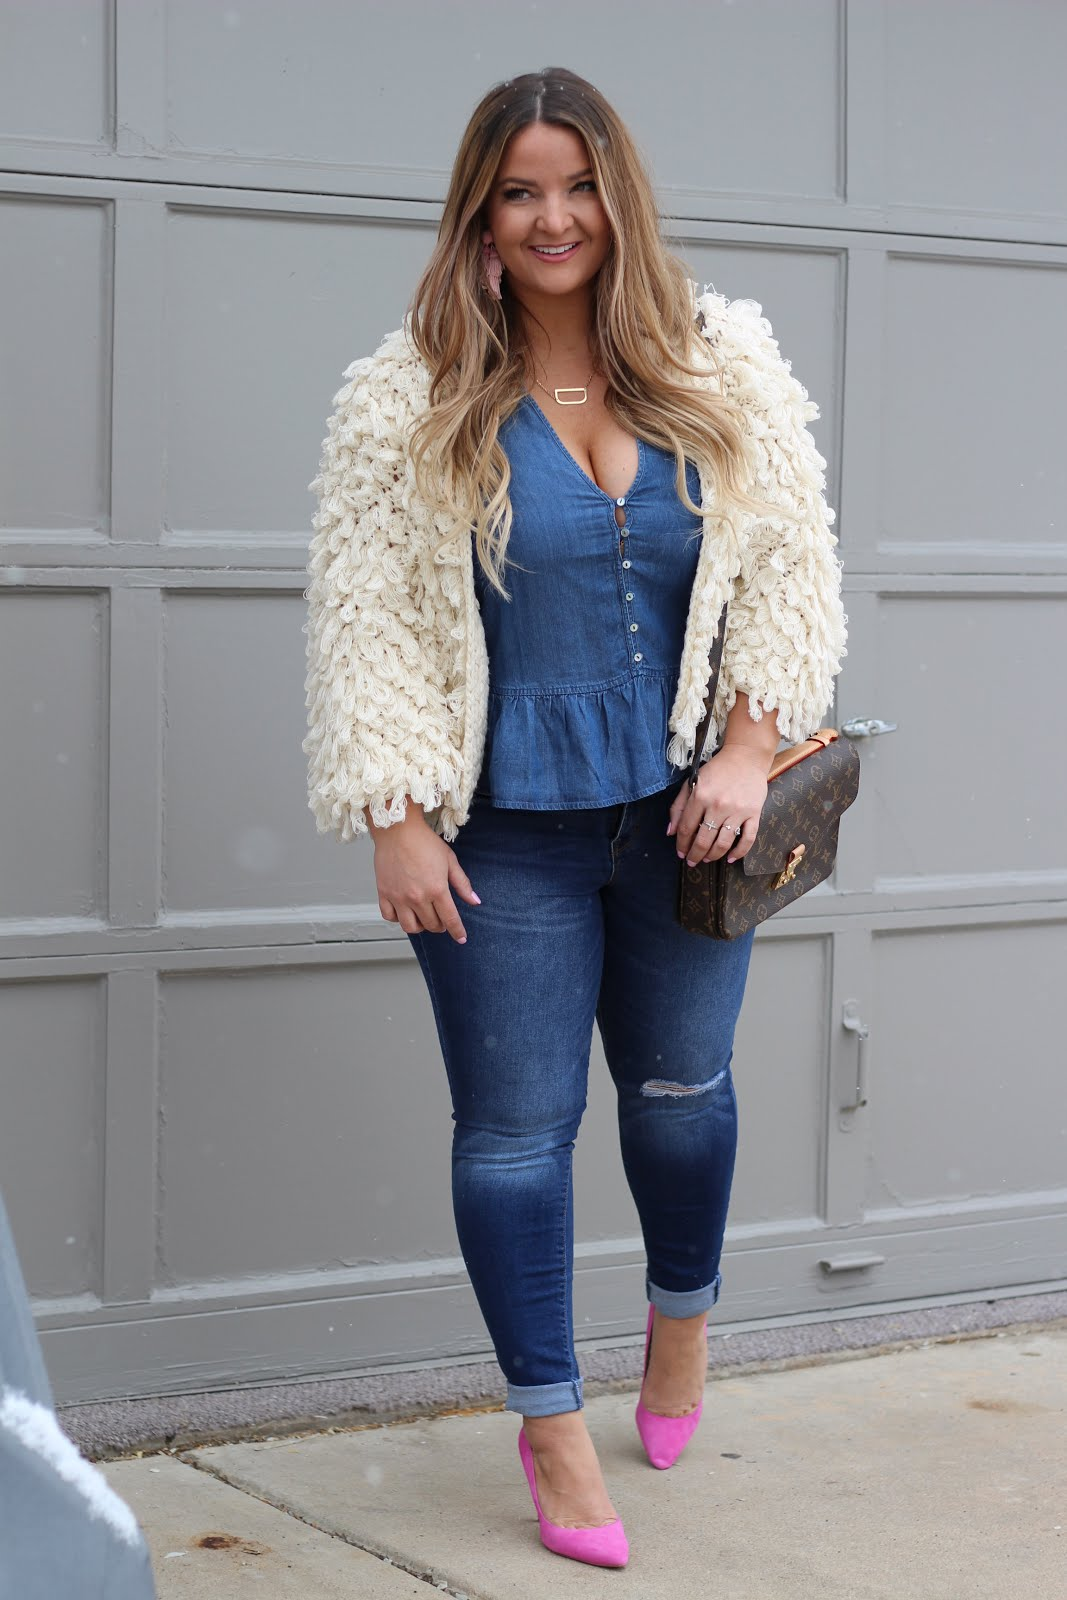 Monochromatic denim outfit by popular Denver fashion blogger Delayna Denaye